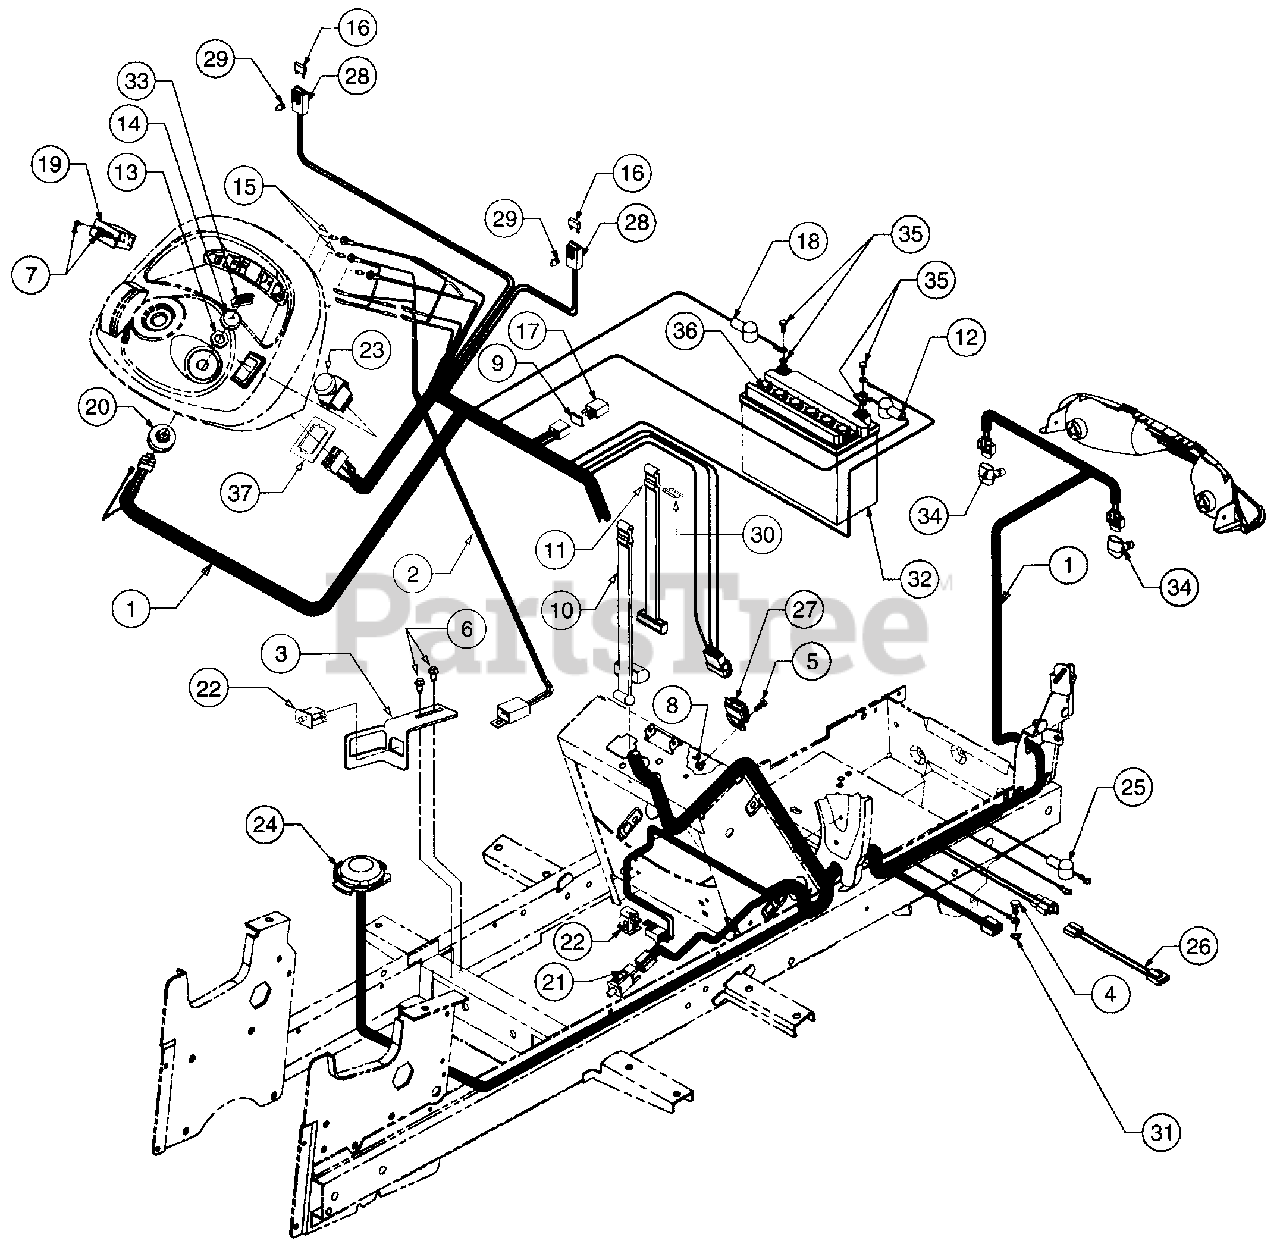 Cub Cadet 2130 Wiring Diagram Database